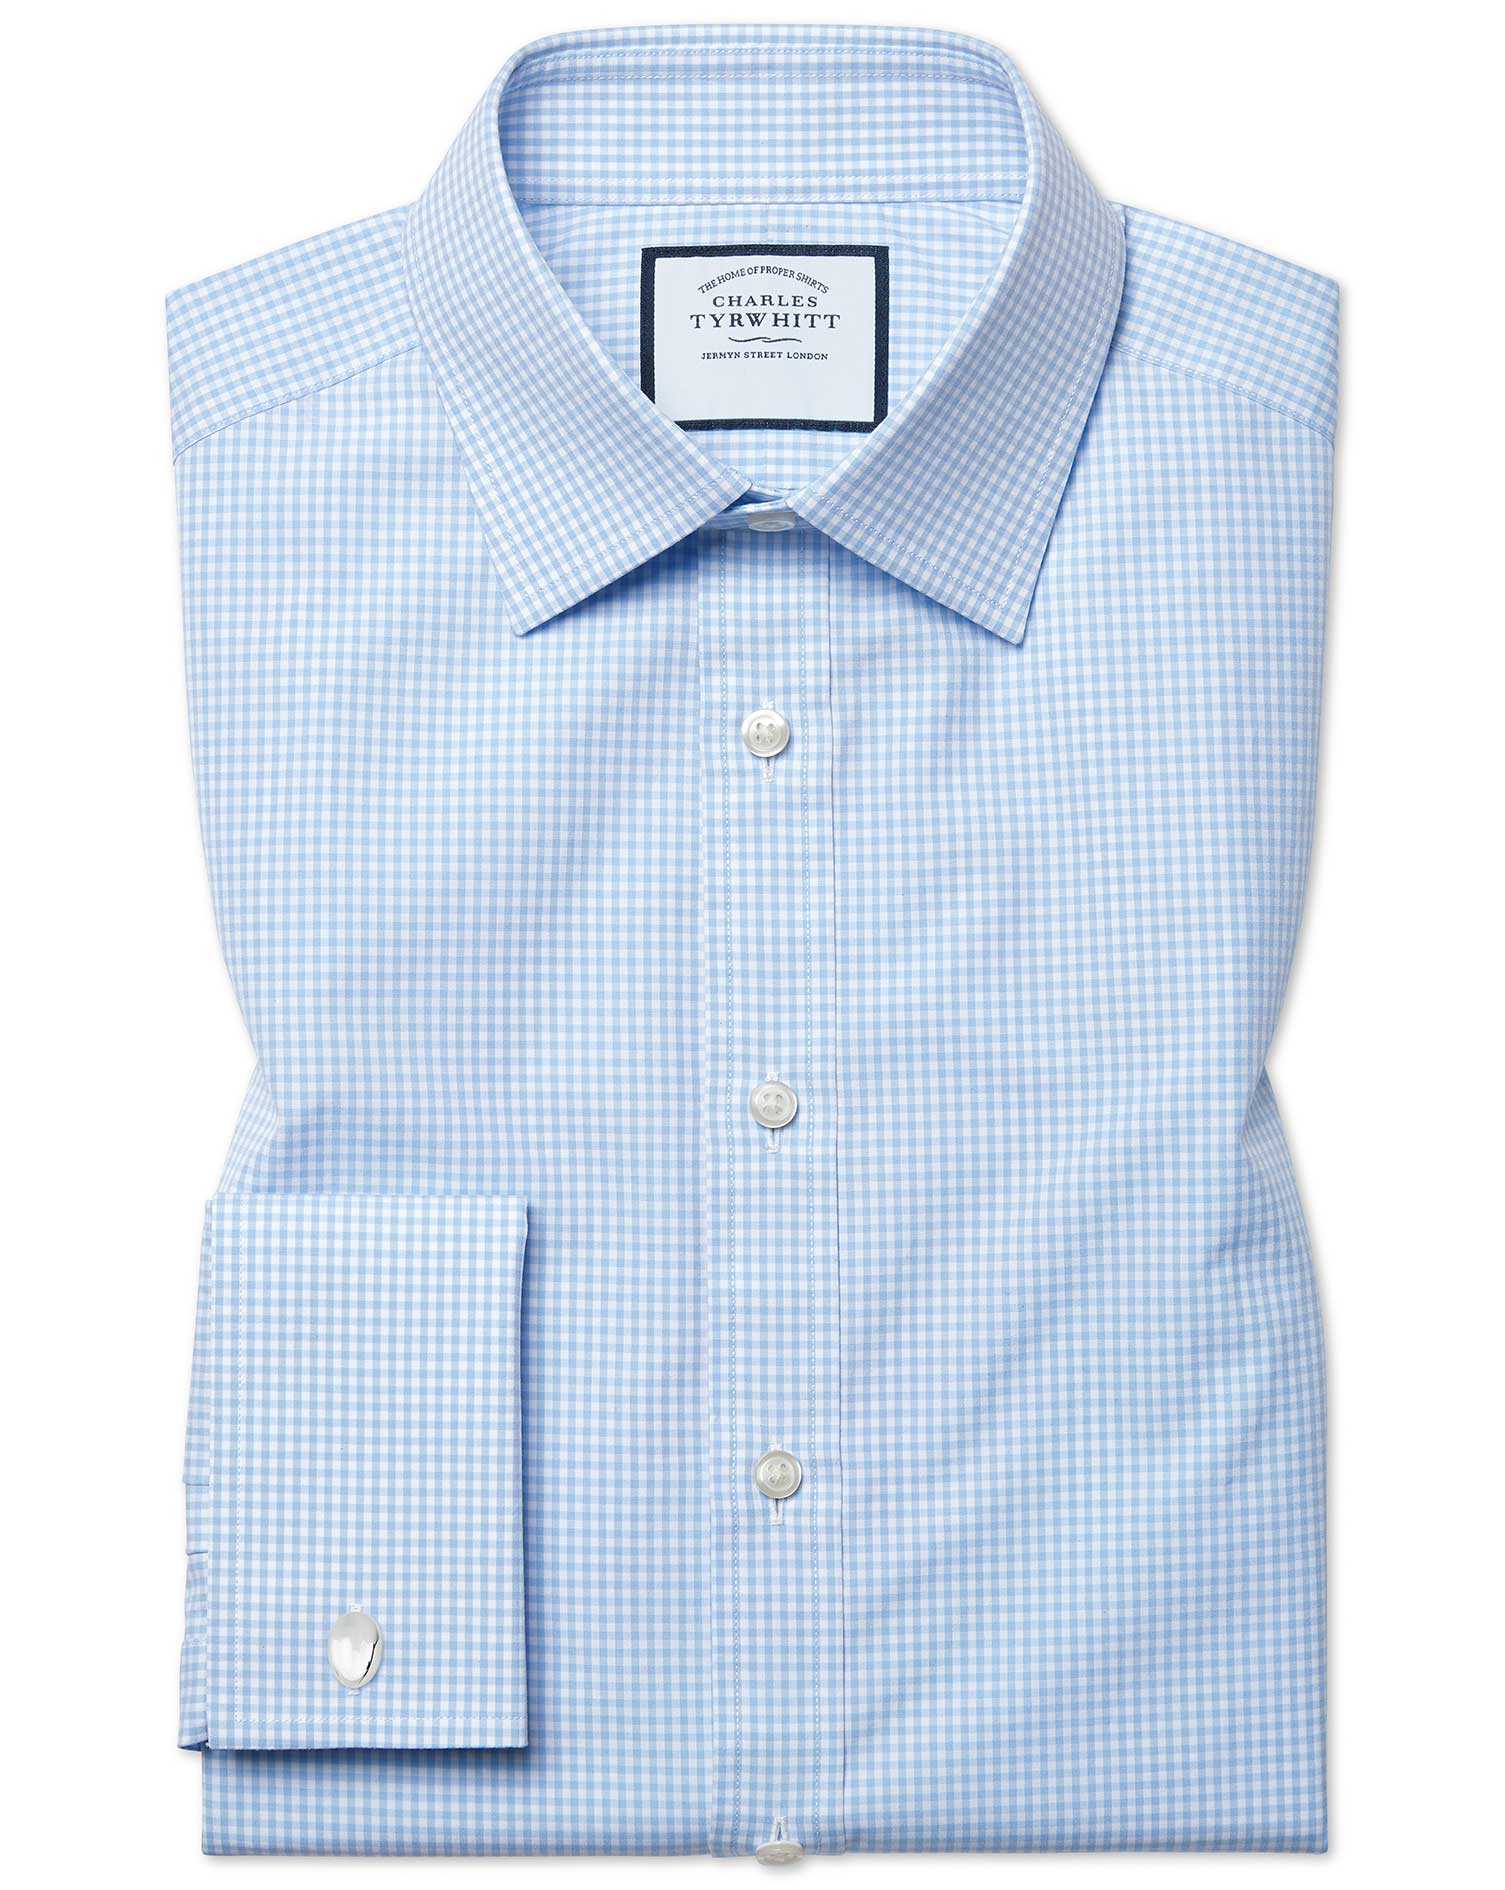 Extra Slim Fit Small Gingham Sky Blue Cotton Formal Shirt Single Cuff Size 15/35 by Charles Tyrwhitt